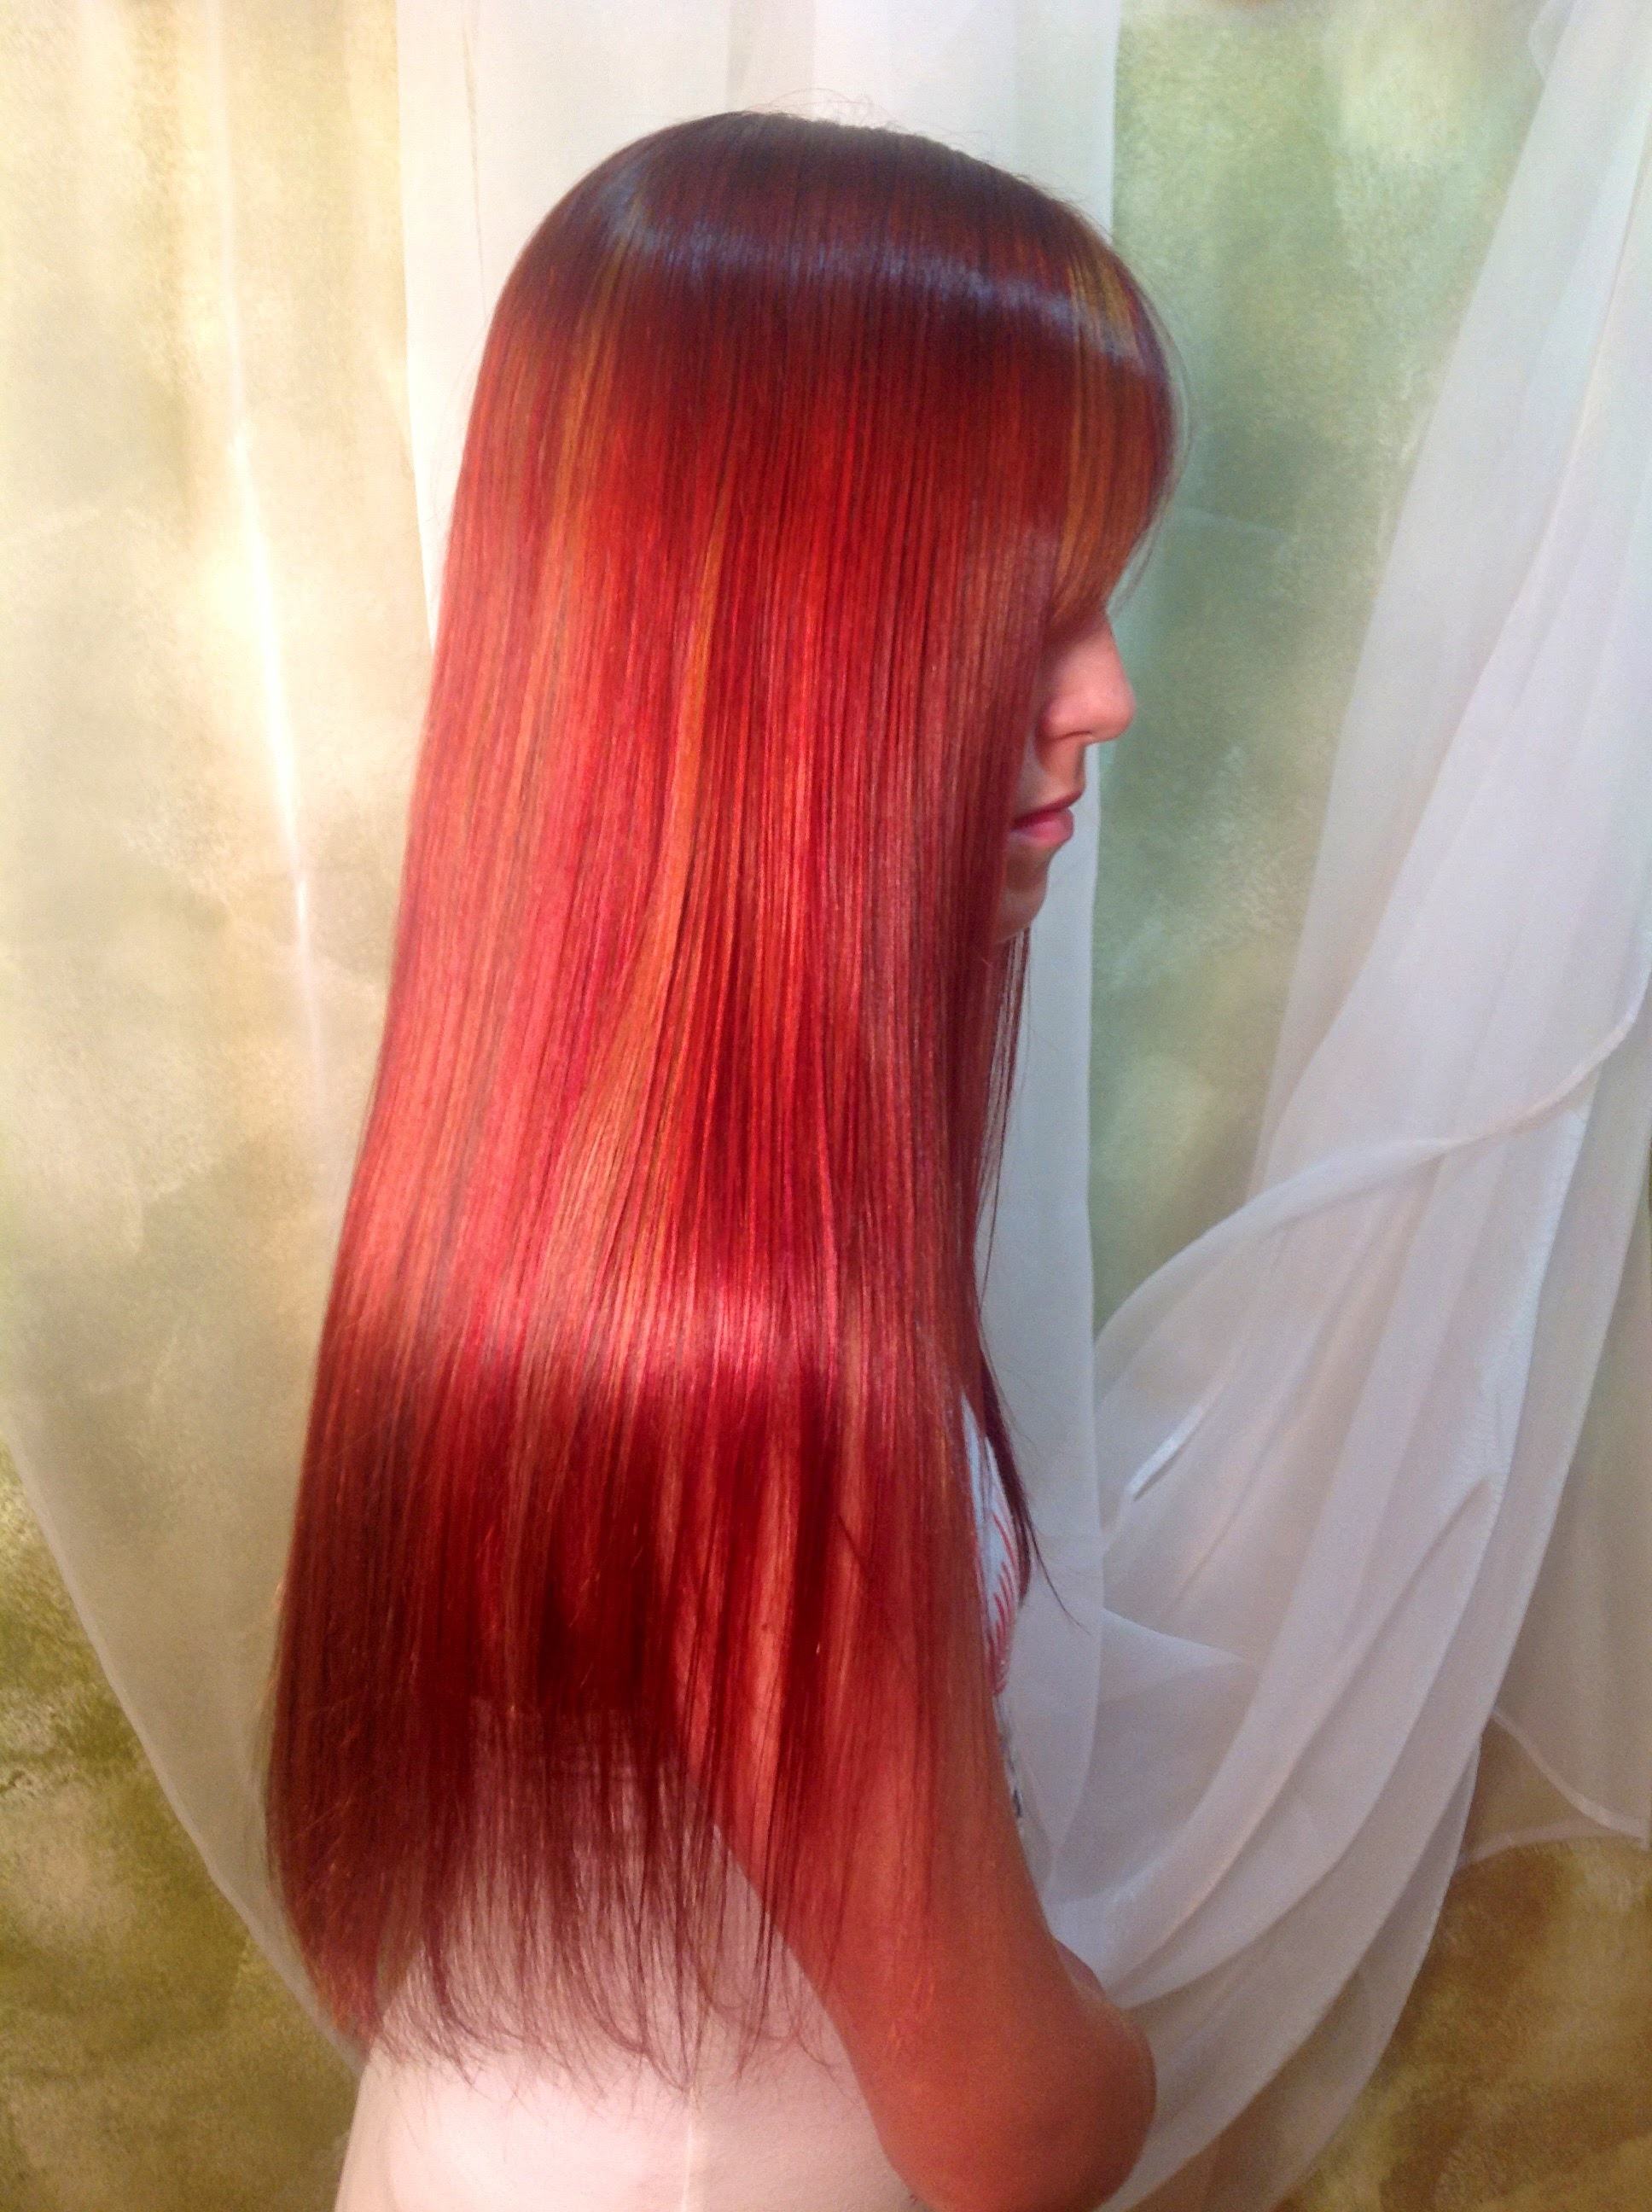 Straight permanent hair -  Long Straight Red Hair